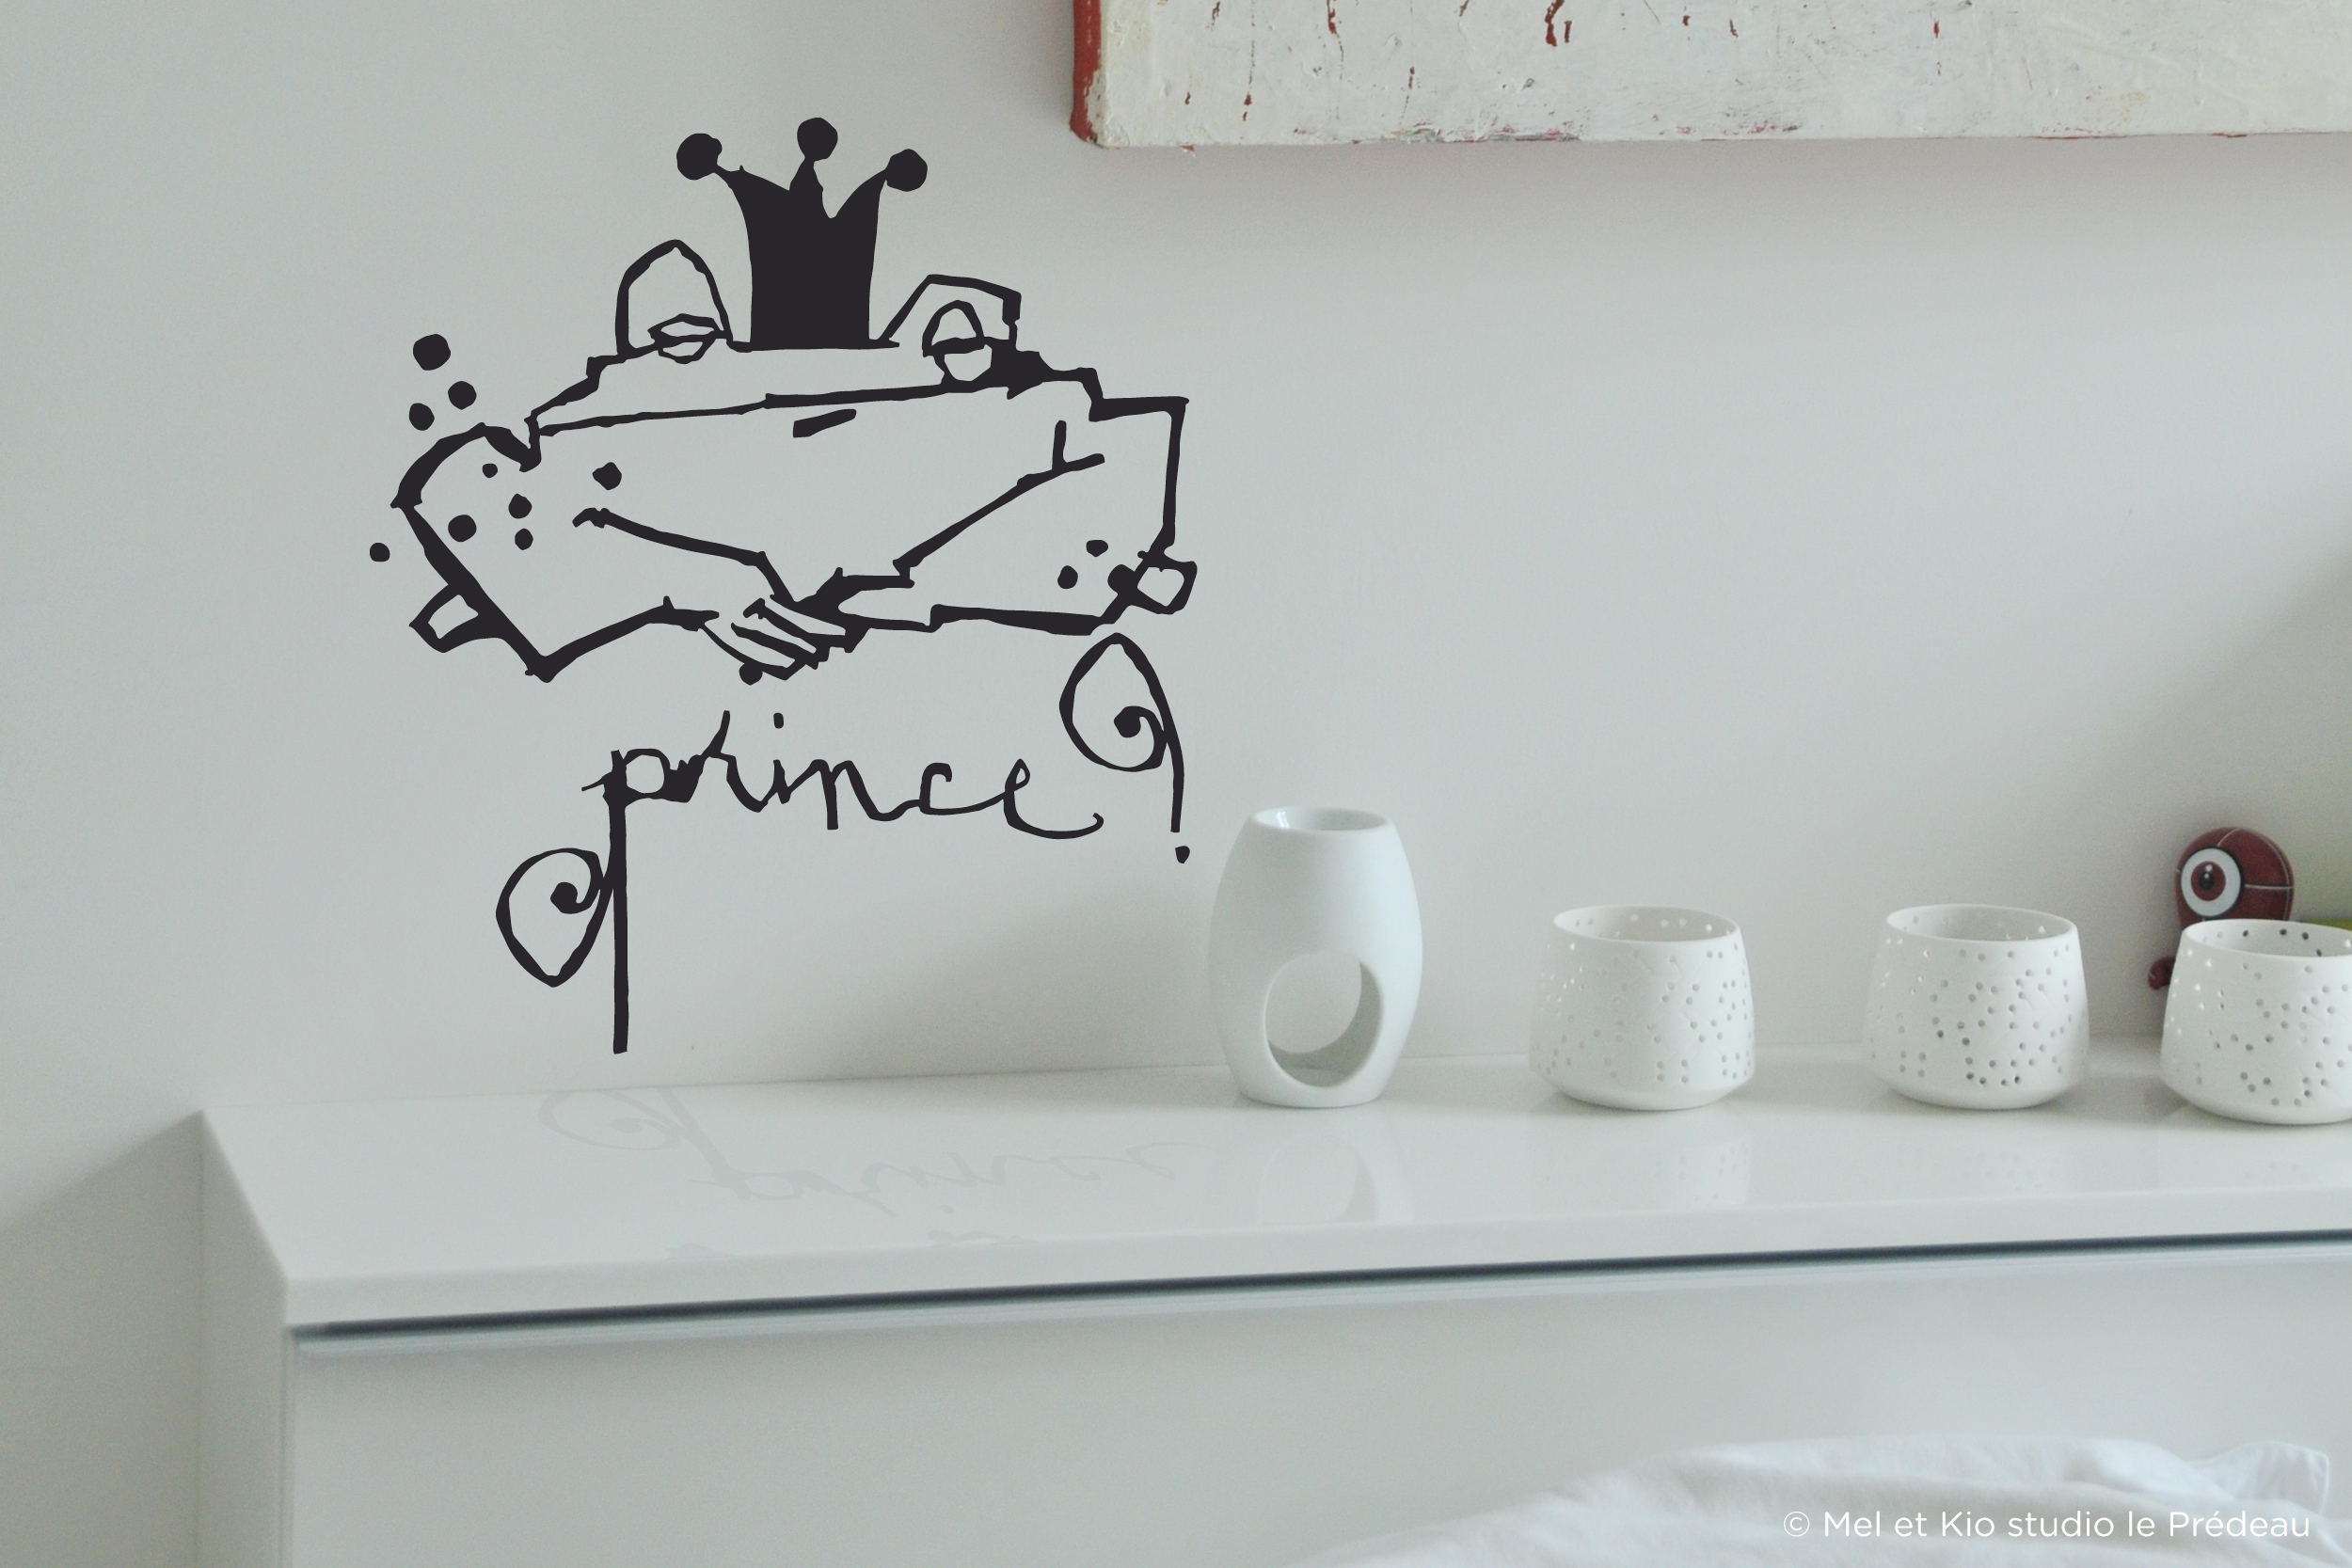 Poetic wall - Sticker - Prince